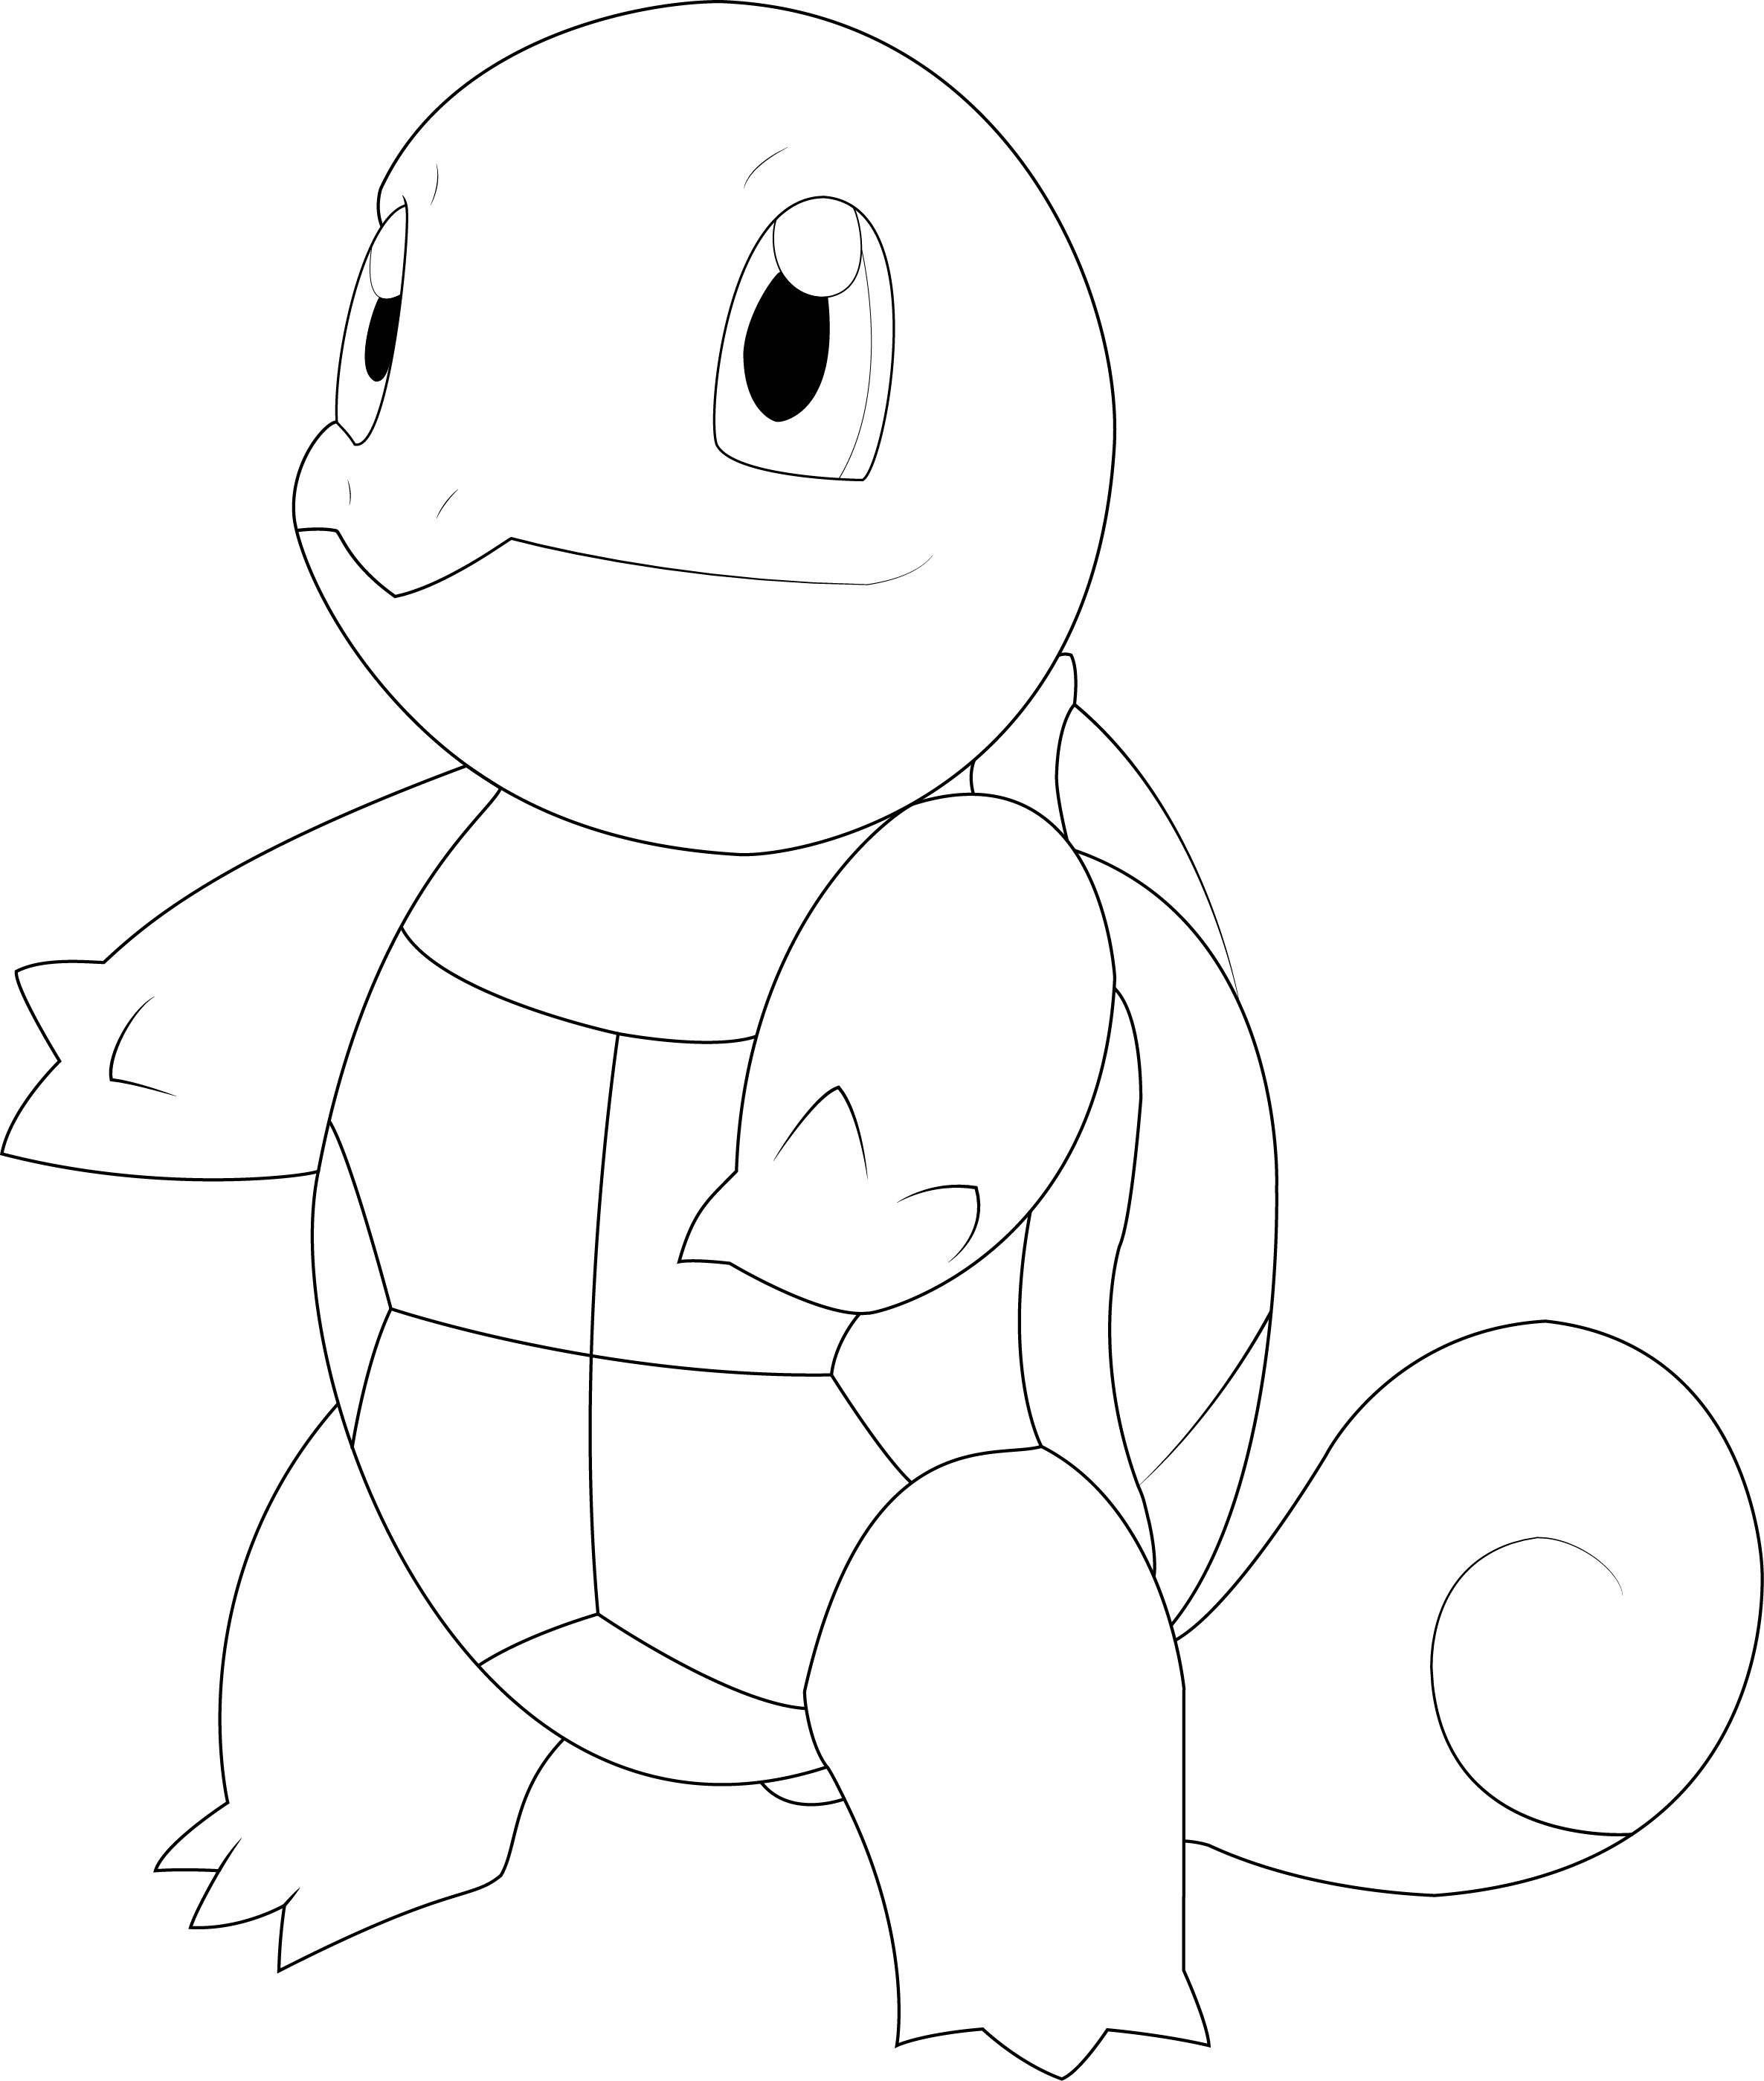 Pokemon Ausmalbilder Bisaflor : Squirtle Lineart By Alcadeas1 Lineart Pokemon Detailed Pinterest